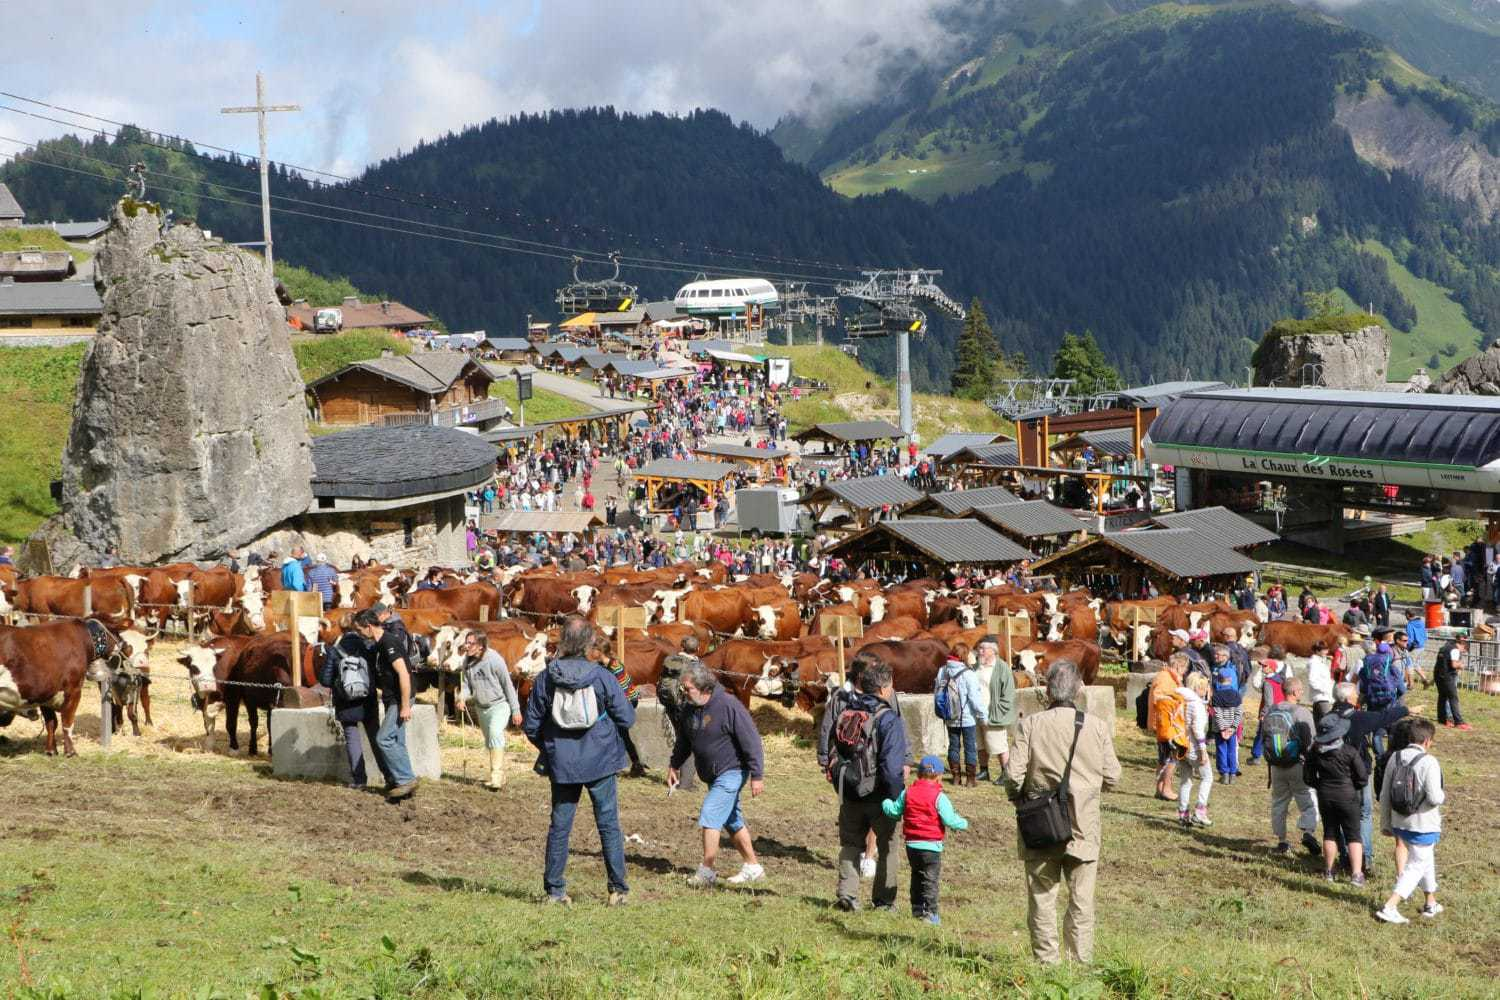 Cows and people at Belle Dimanche in Chatel